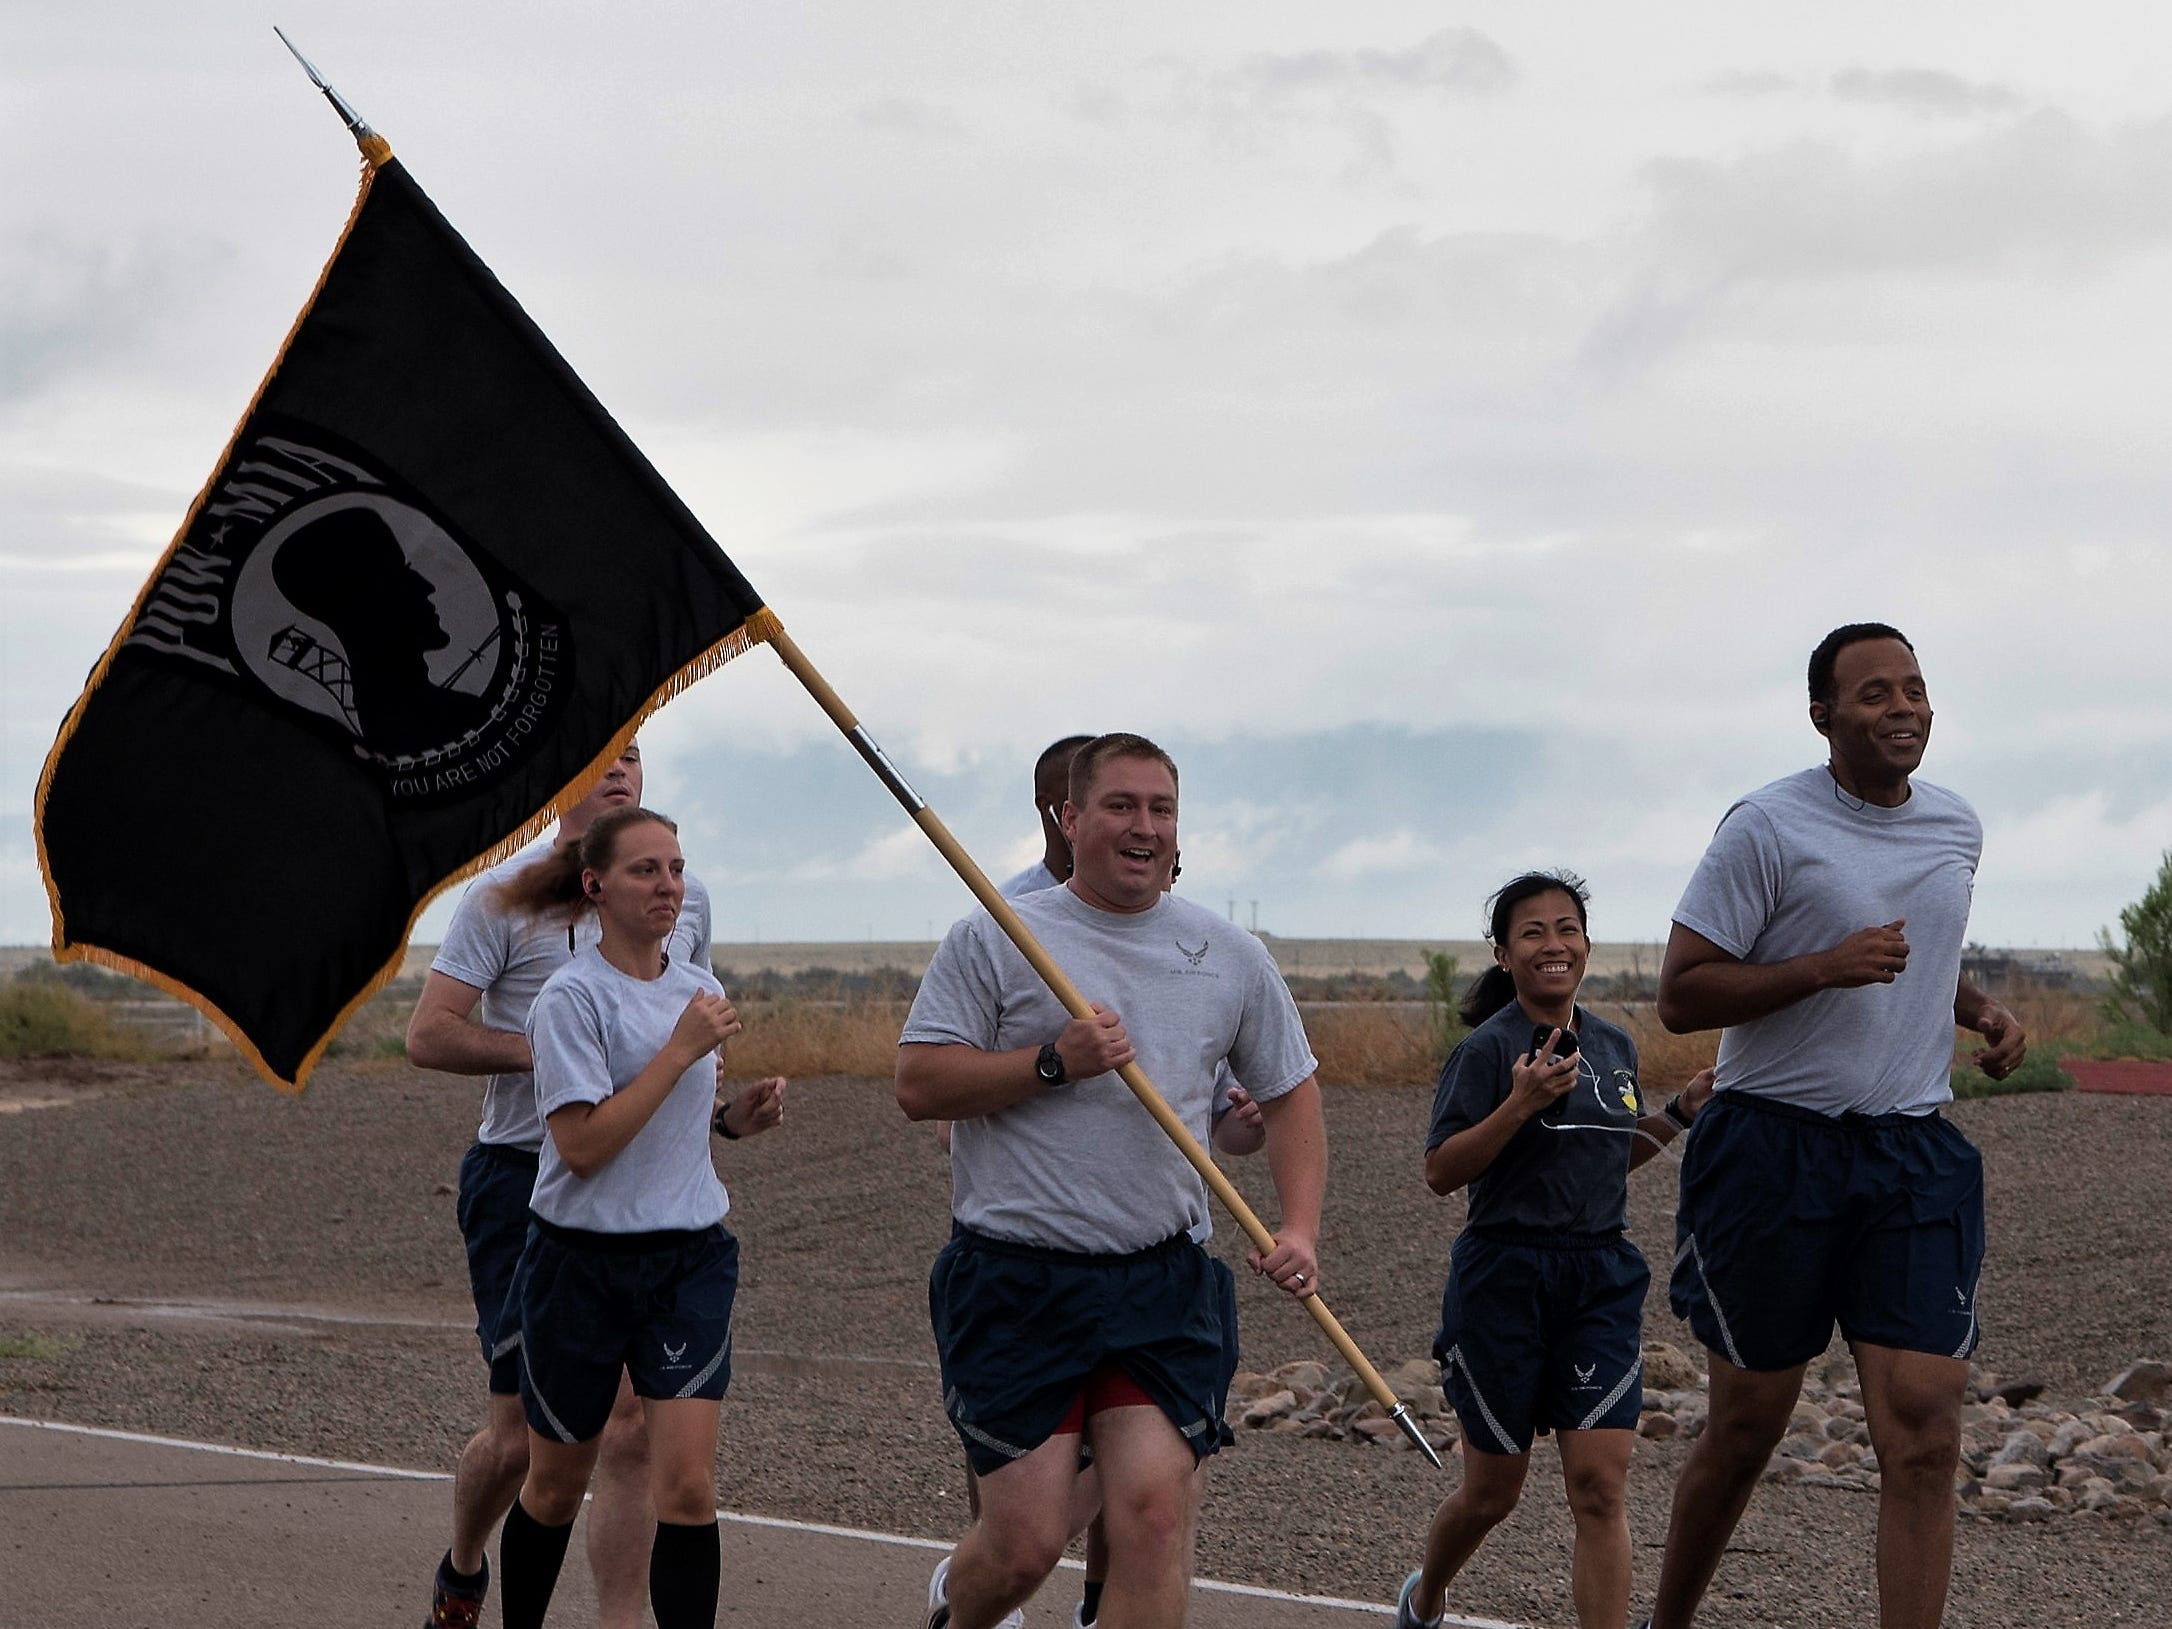 Major Steve Tatro, 49th Wing Comptroller Squadron commander, begins the Prisoner of War/Missing in Action run Sept. 20, at the base track. The Wing Staff Agency was one of the 48 groups to run for half an hour holding the POW/MIA flag.